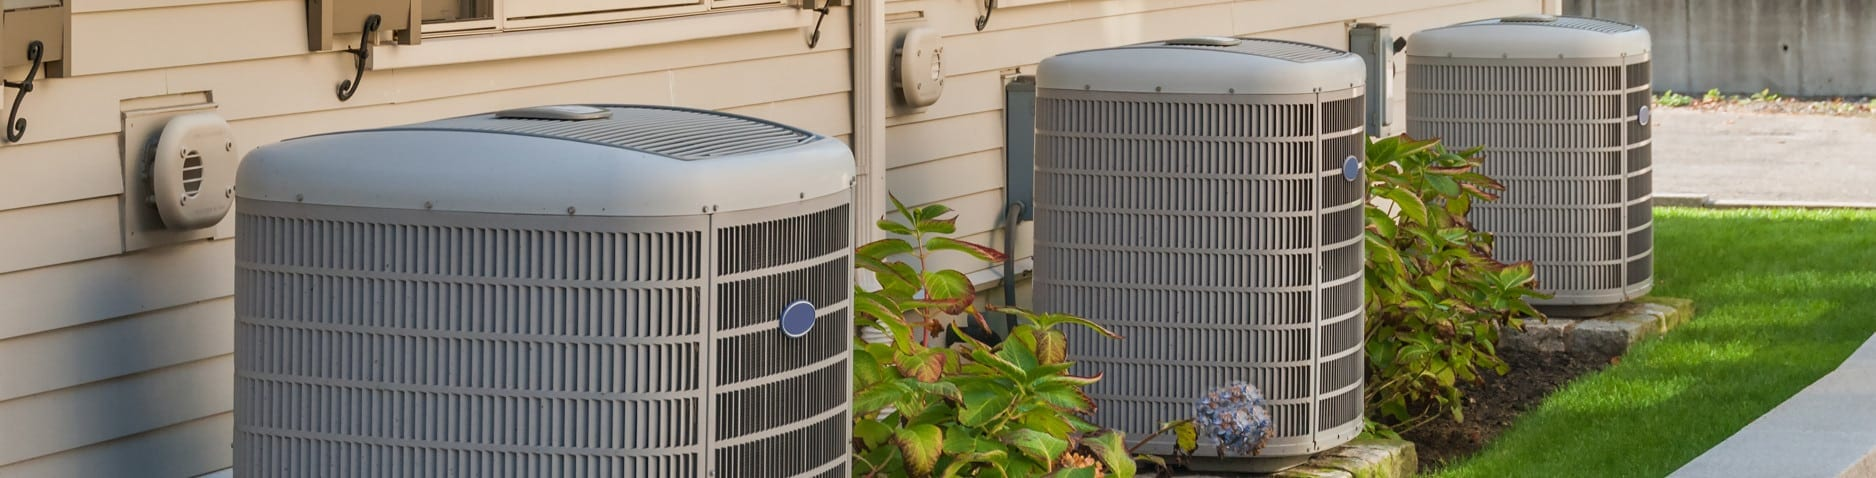 Air Conditioning Service Contract